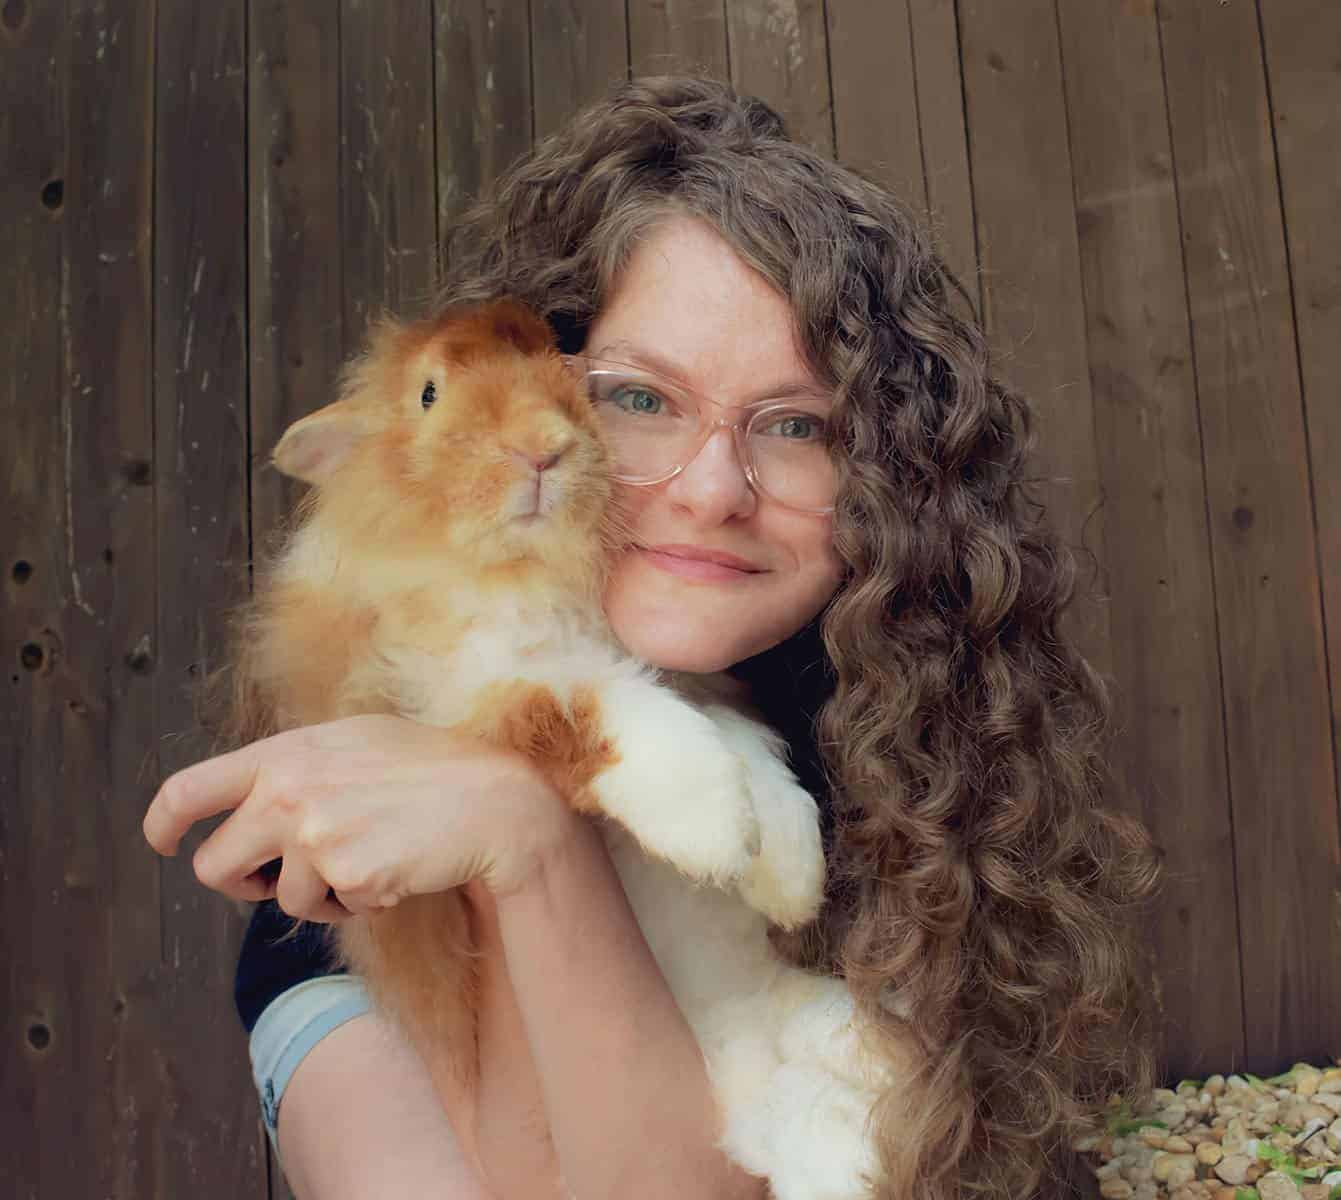 A woman with long curly hair holding a white and gold rabbit.